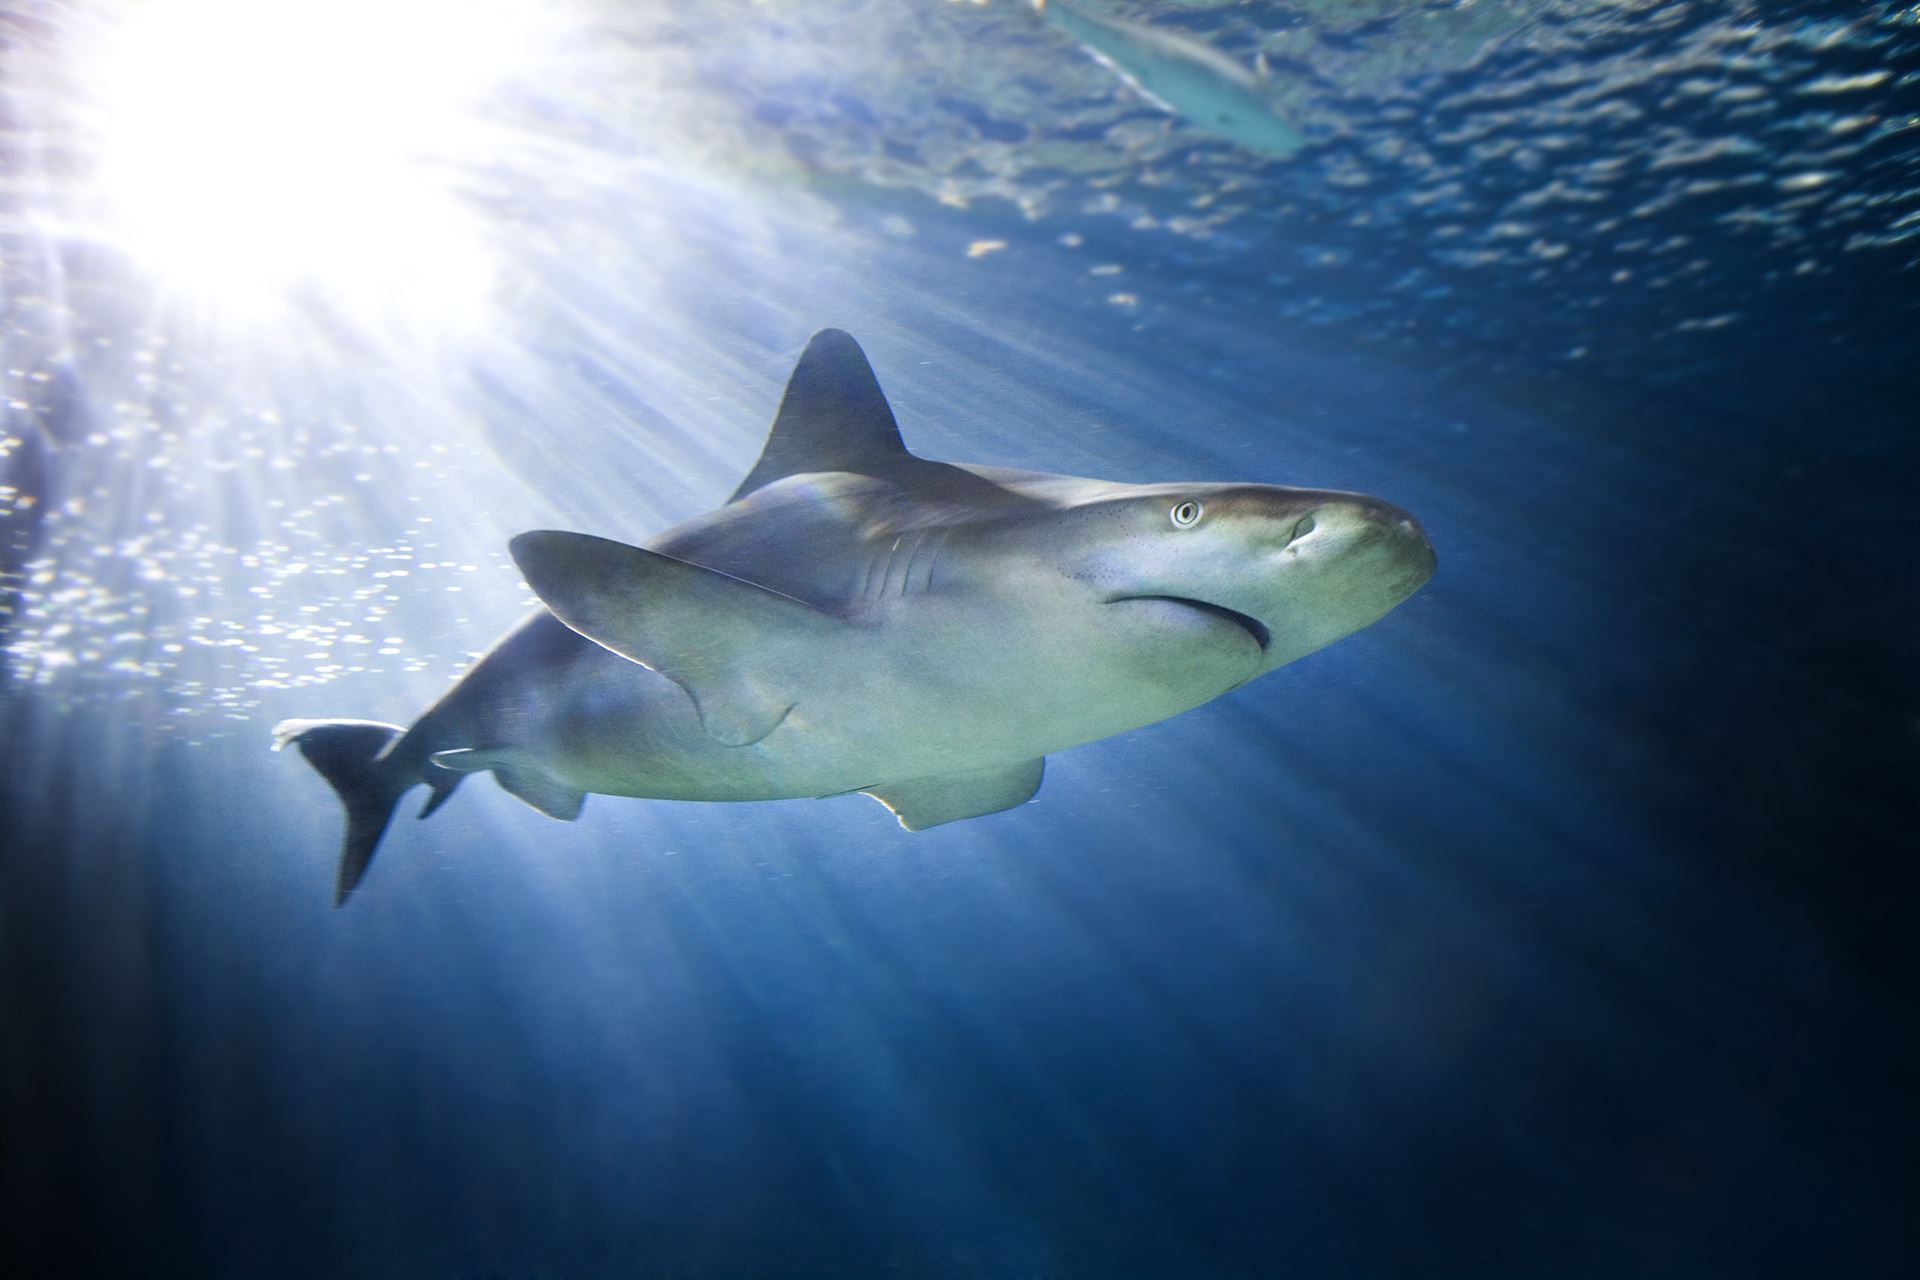 Sandbar shark swims through dark blue water with light filtering through. A fish swims in the background.